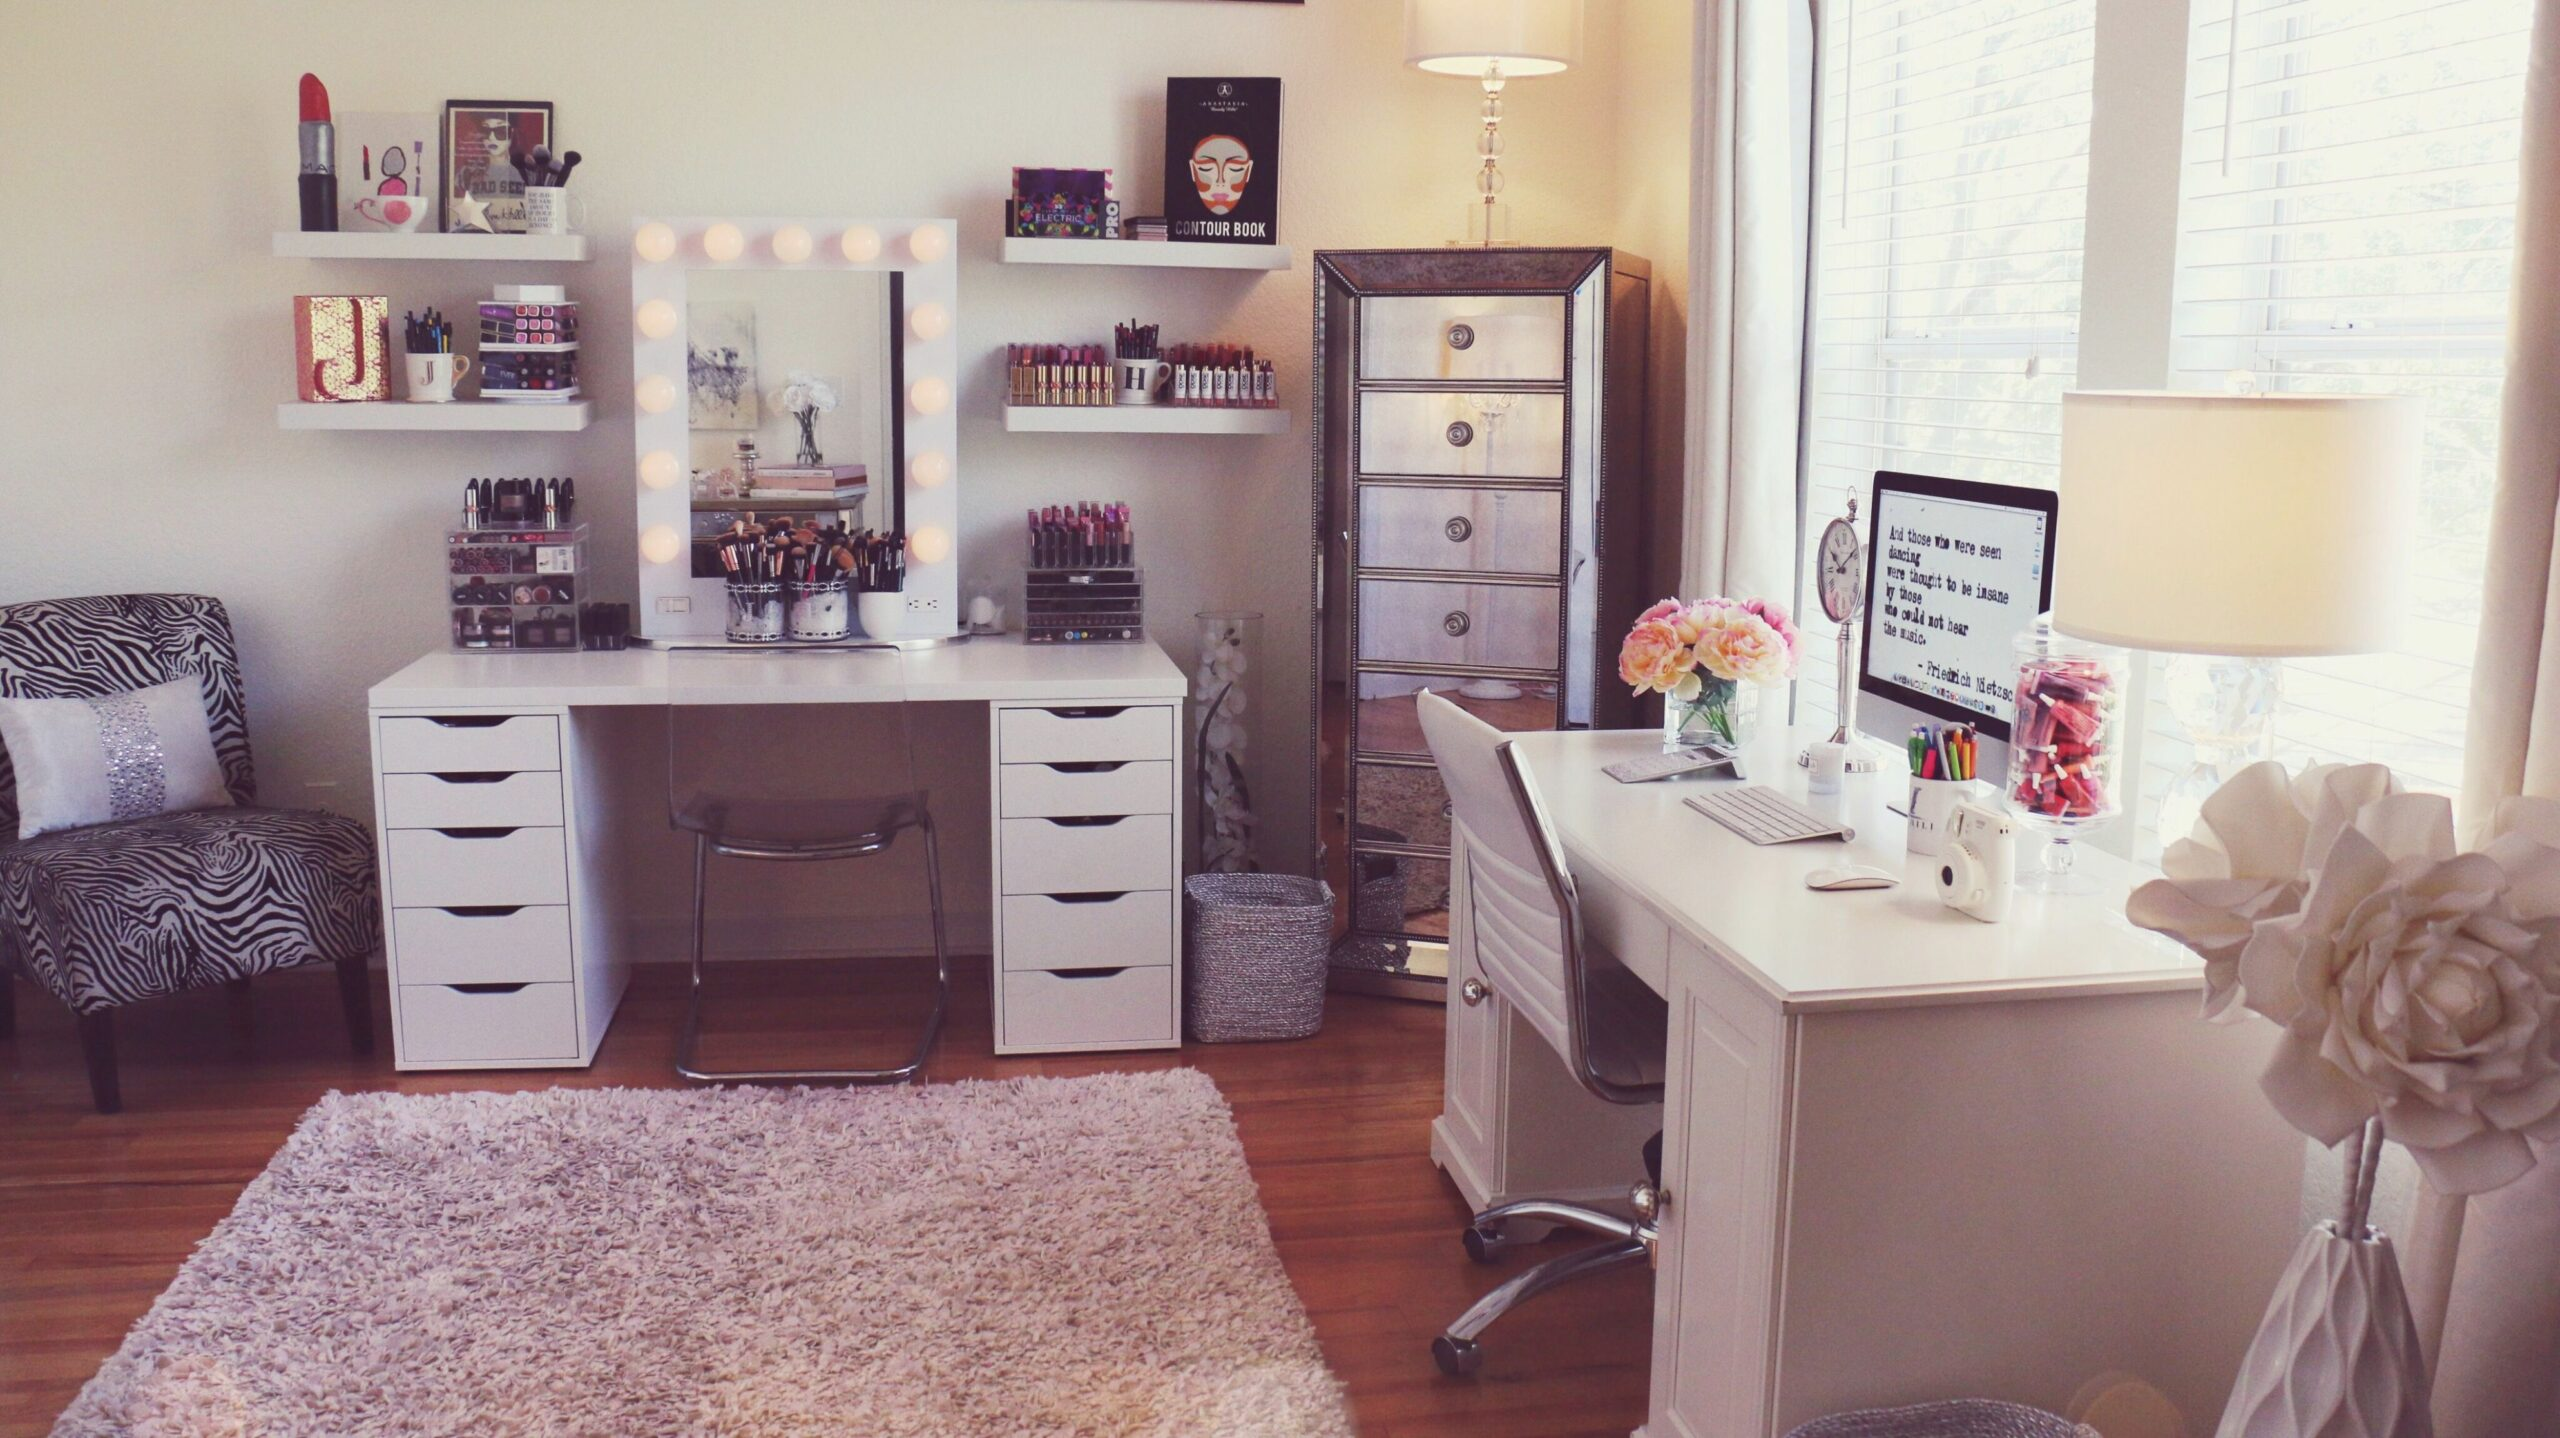 Current Beauty Room Set Up! | Beauty room, Makeup room decor, Room ..